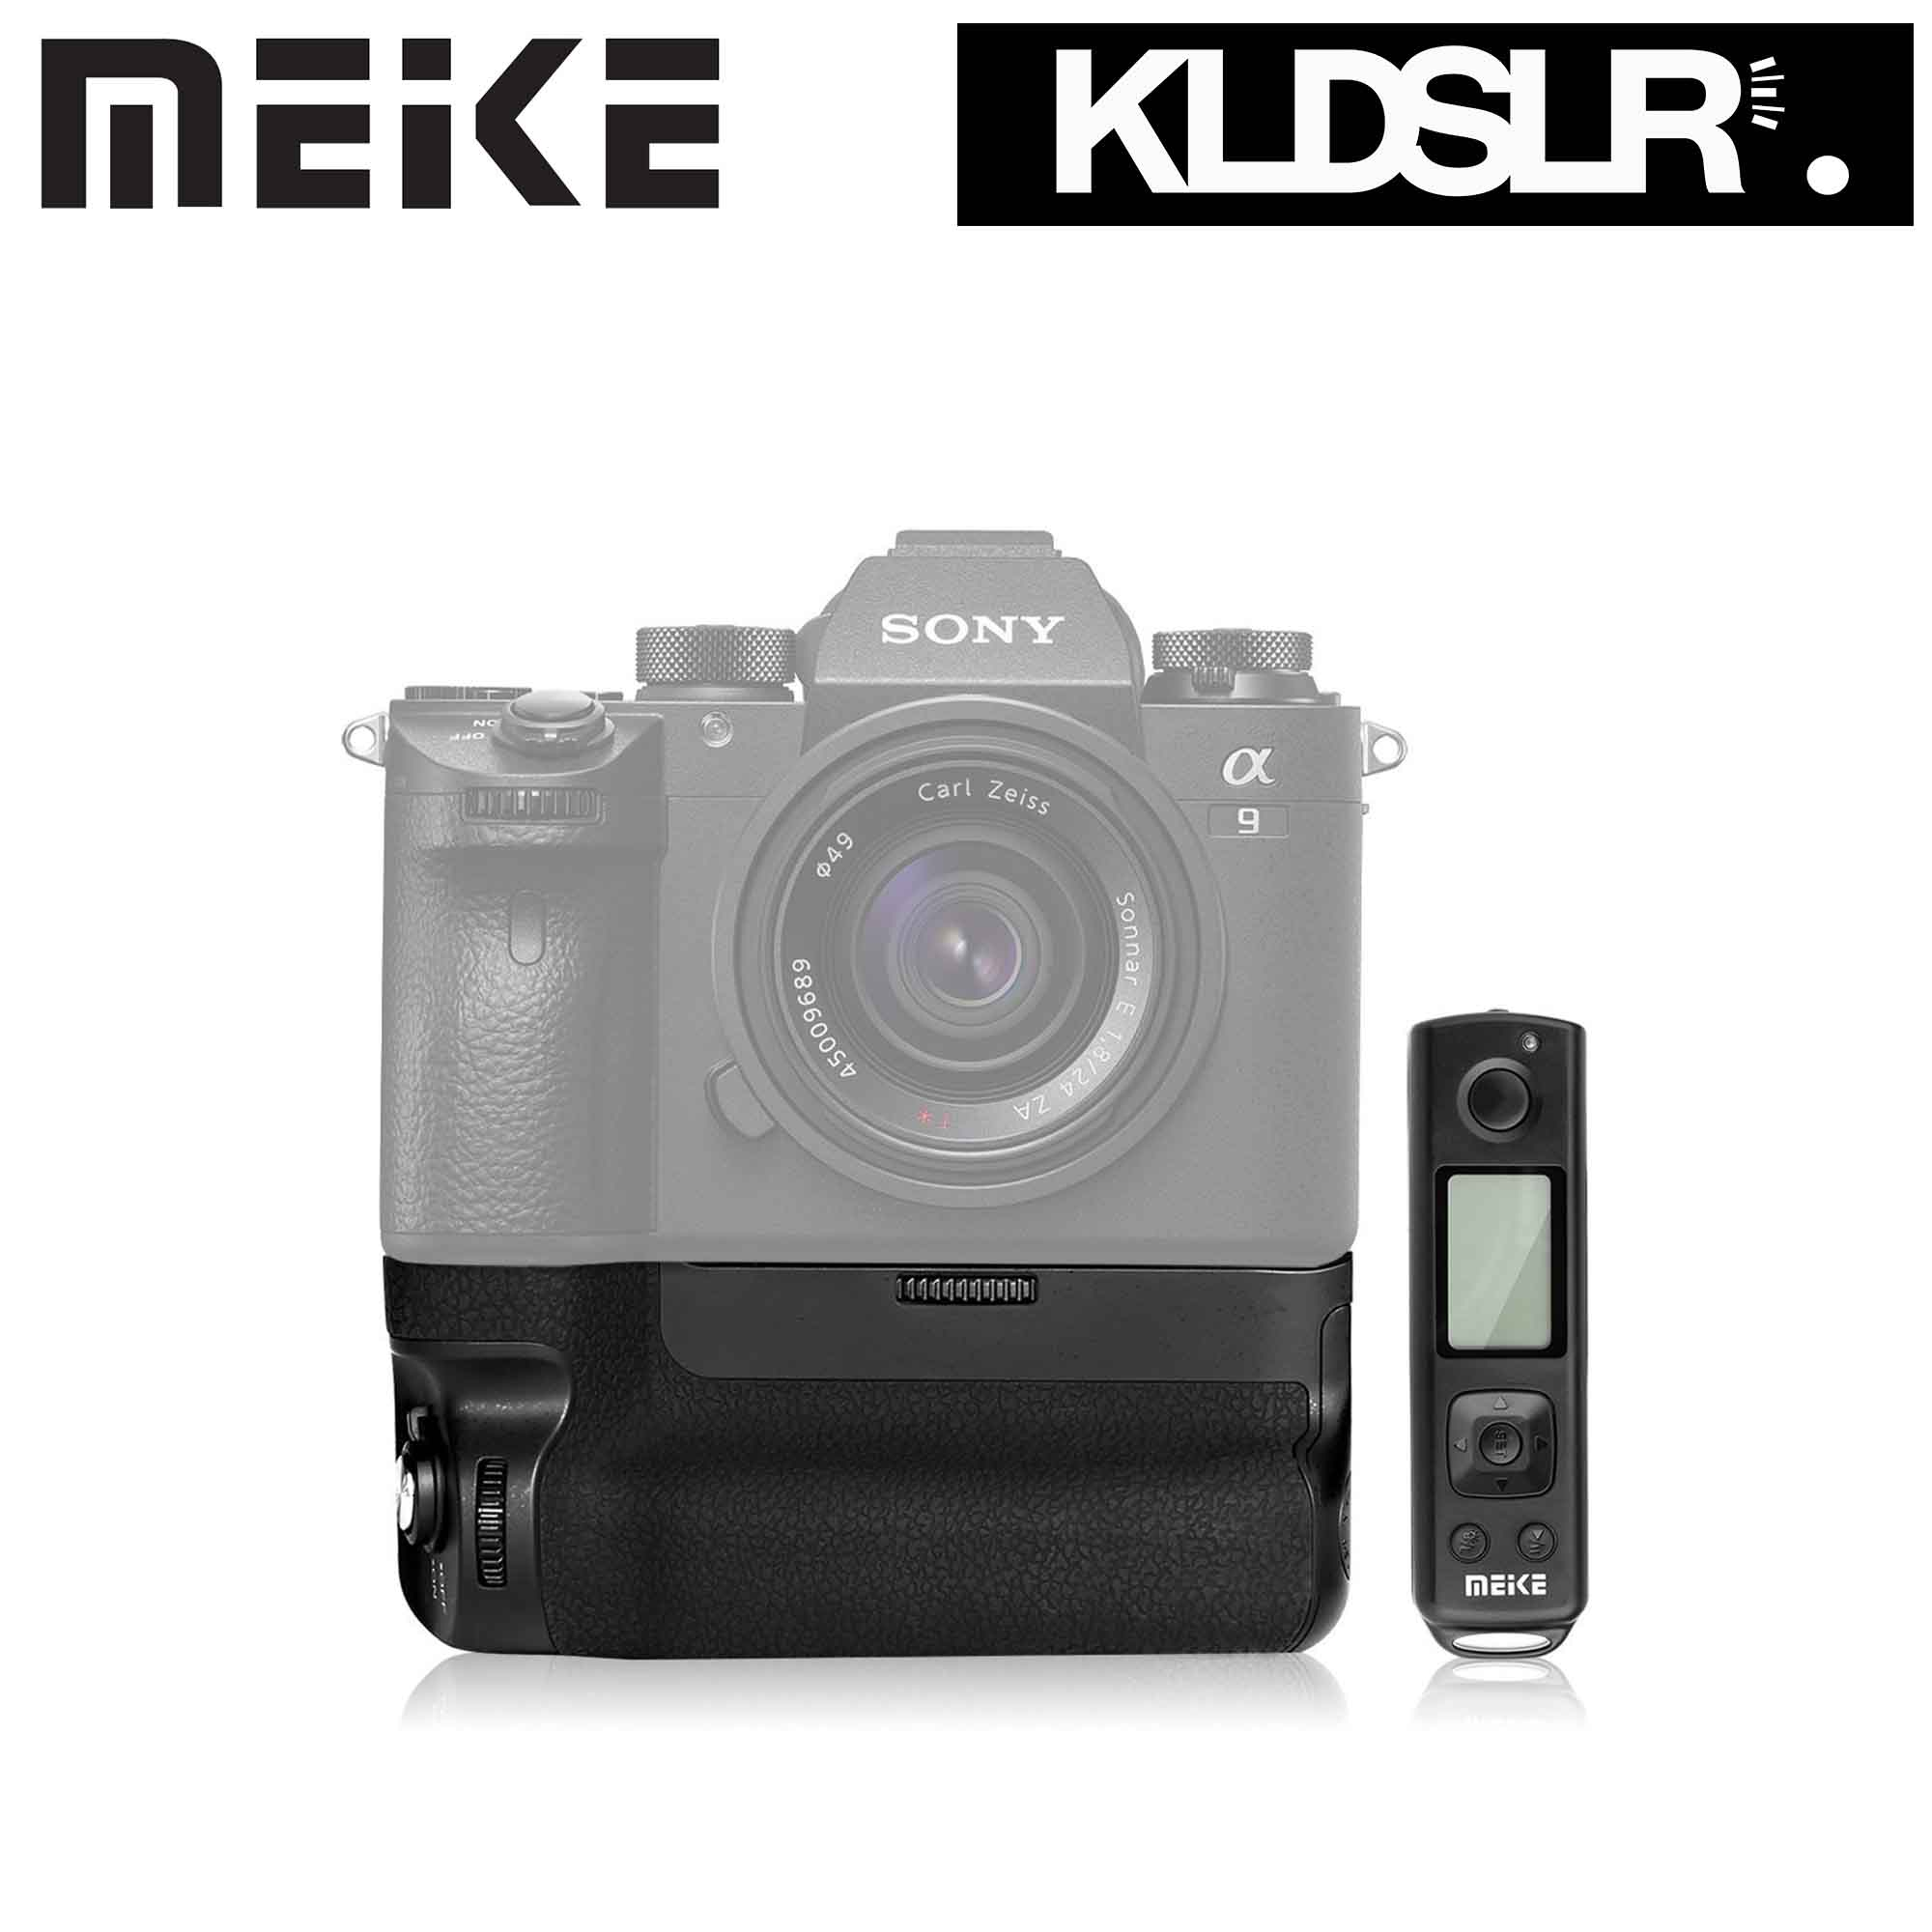 Meike The New MK A9 Pro Battery Grip Built-in 2.4GHz Remote Controller Up to 100M to Control shooting Vertical-shooting Function for Sony A9 A7RIII camera